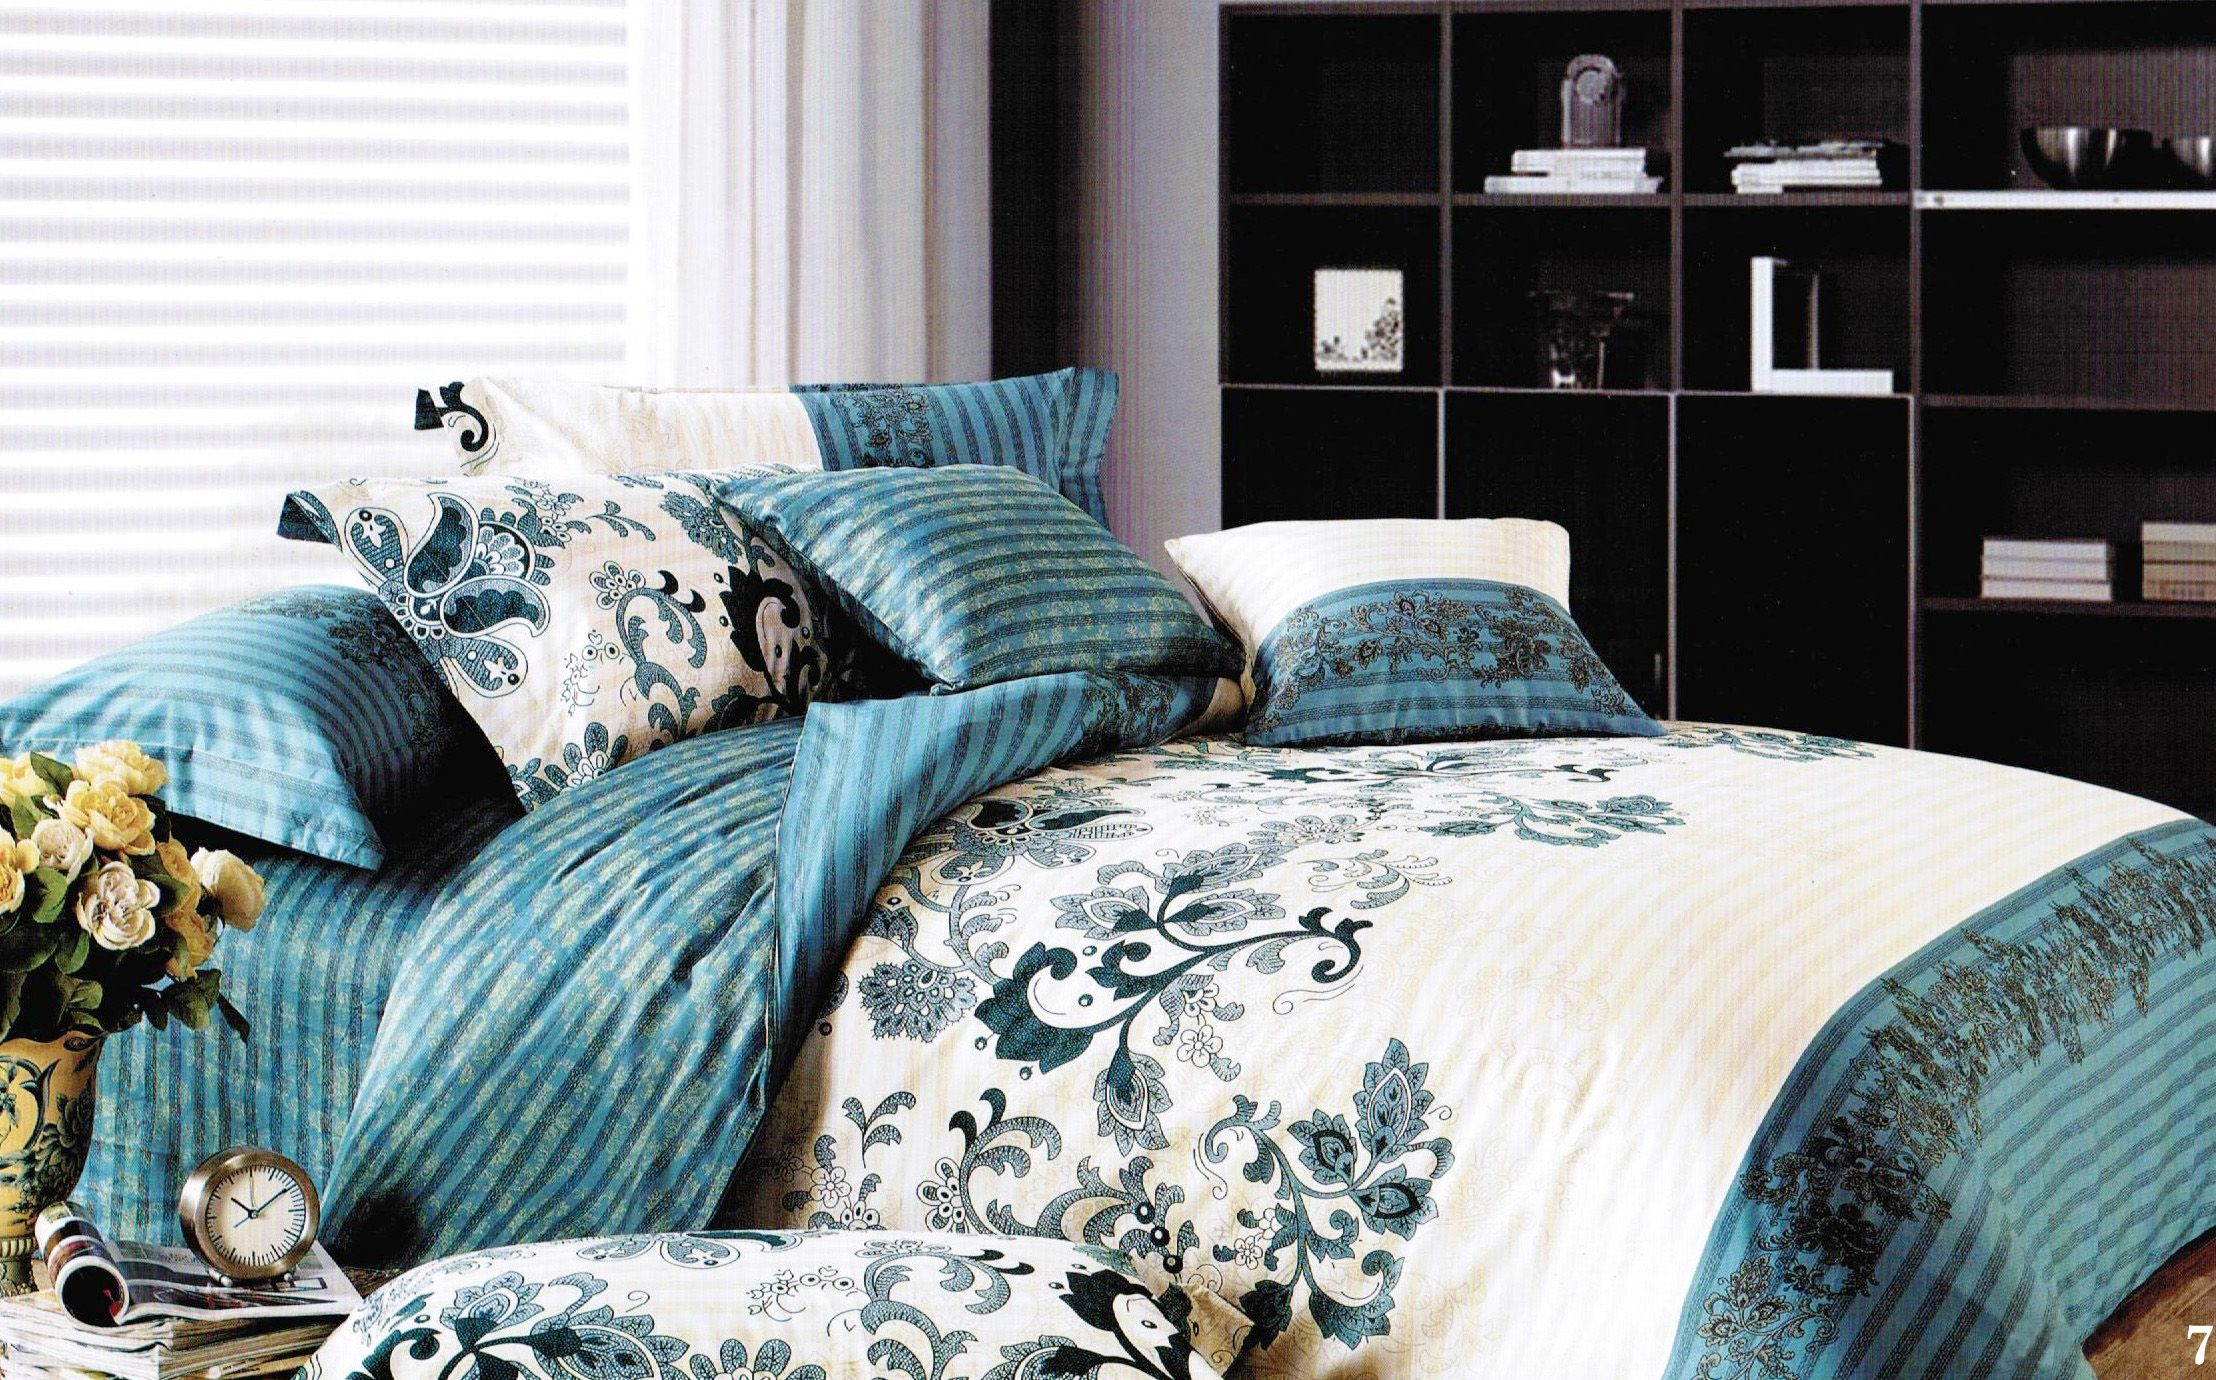 stylish and comfortable this bed sheet set will go well with both  - stylish and comfortable this bed sheet set will go well with bothtraditional and contemporary